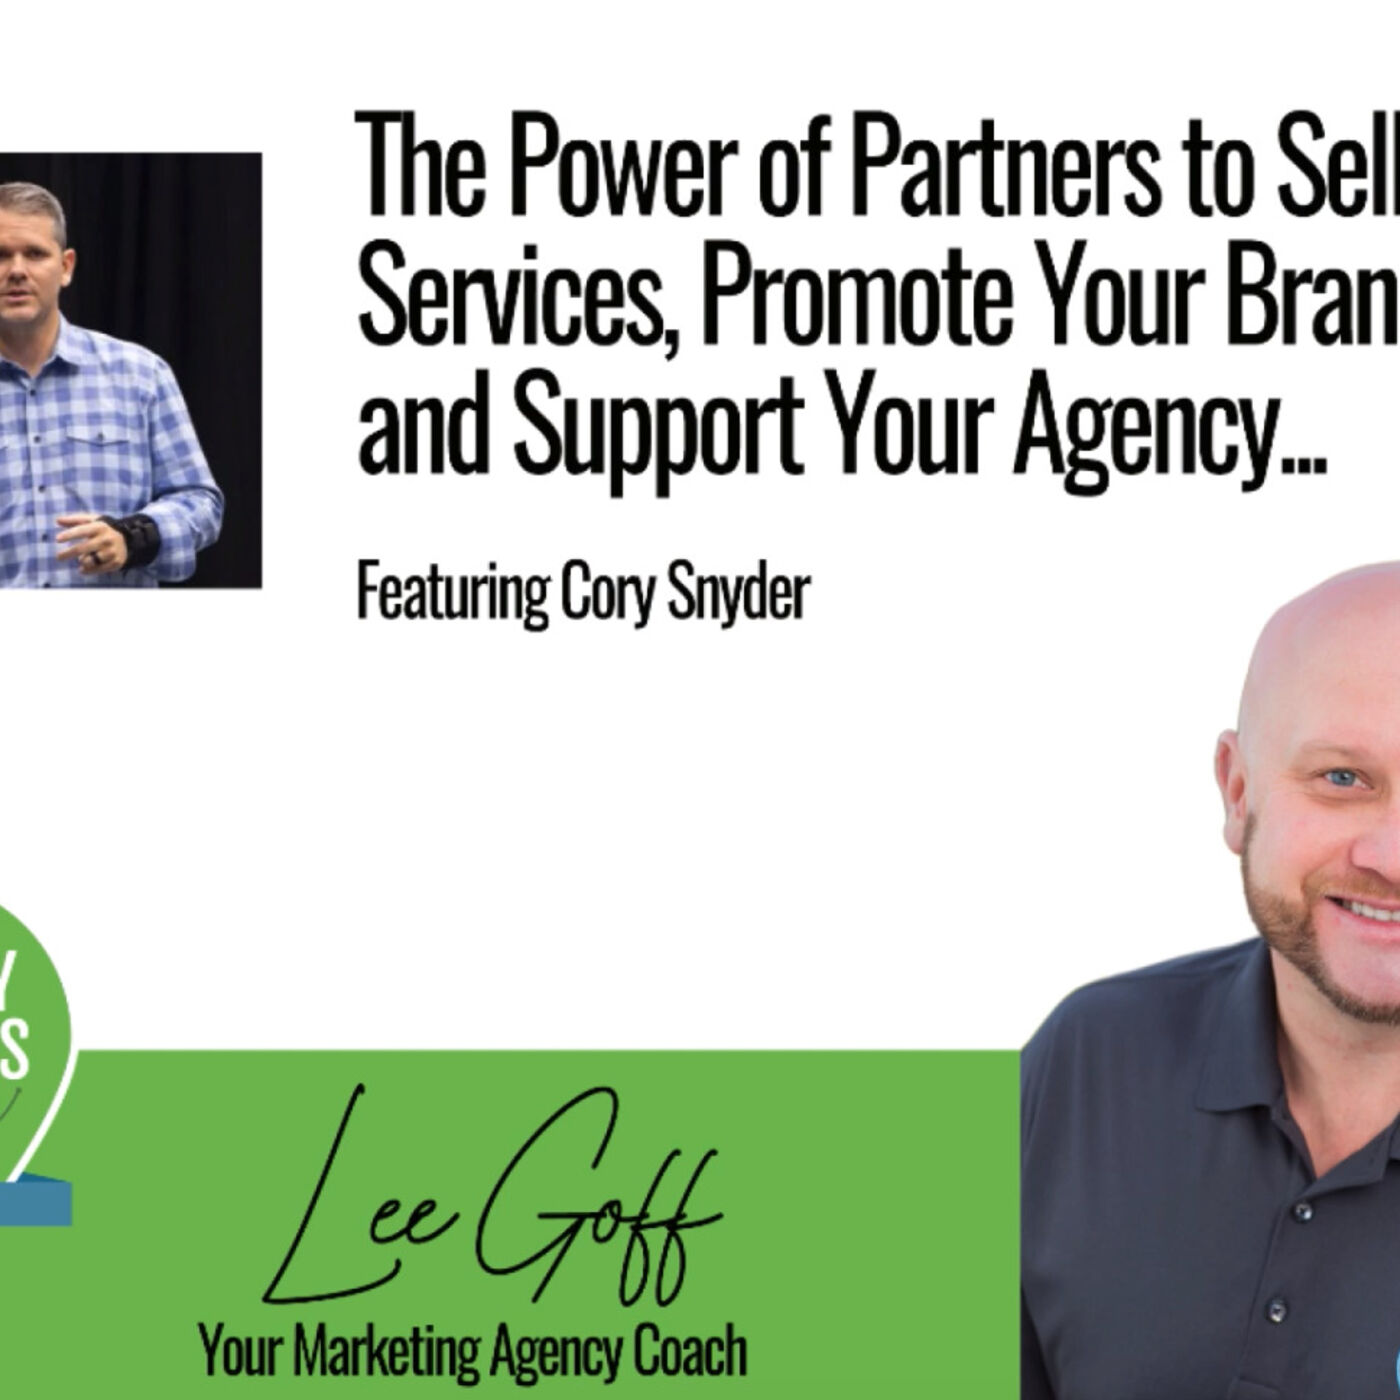 Cory Snyder-Partner and Channel Boss For Active Campaign Discuss The Power of Referral Partners - Agency Success GPS Podcast - Lee Goff - Episode 4